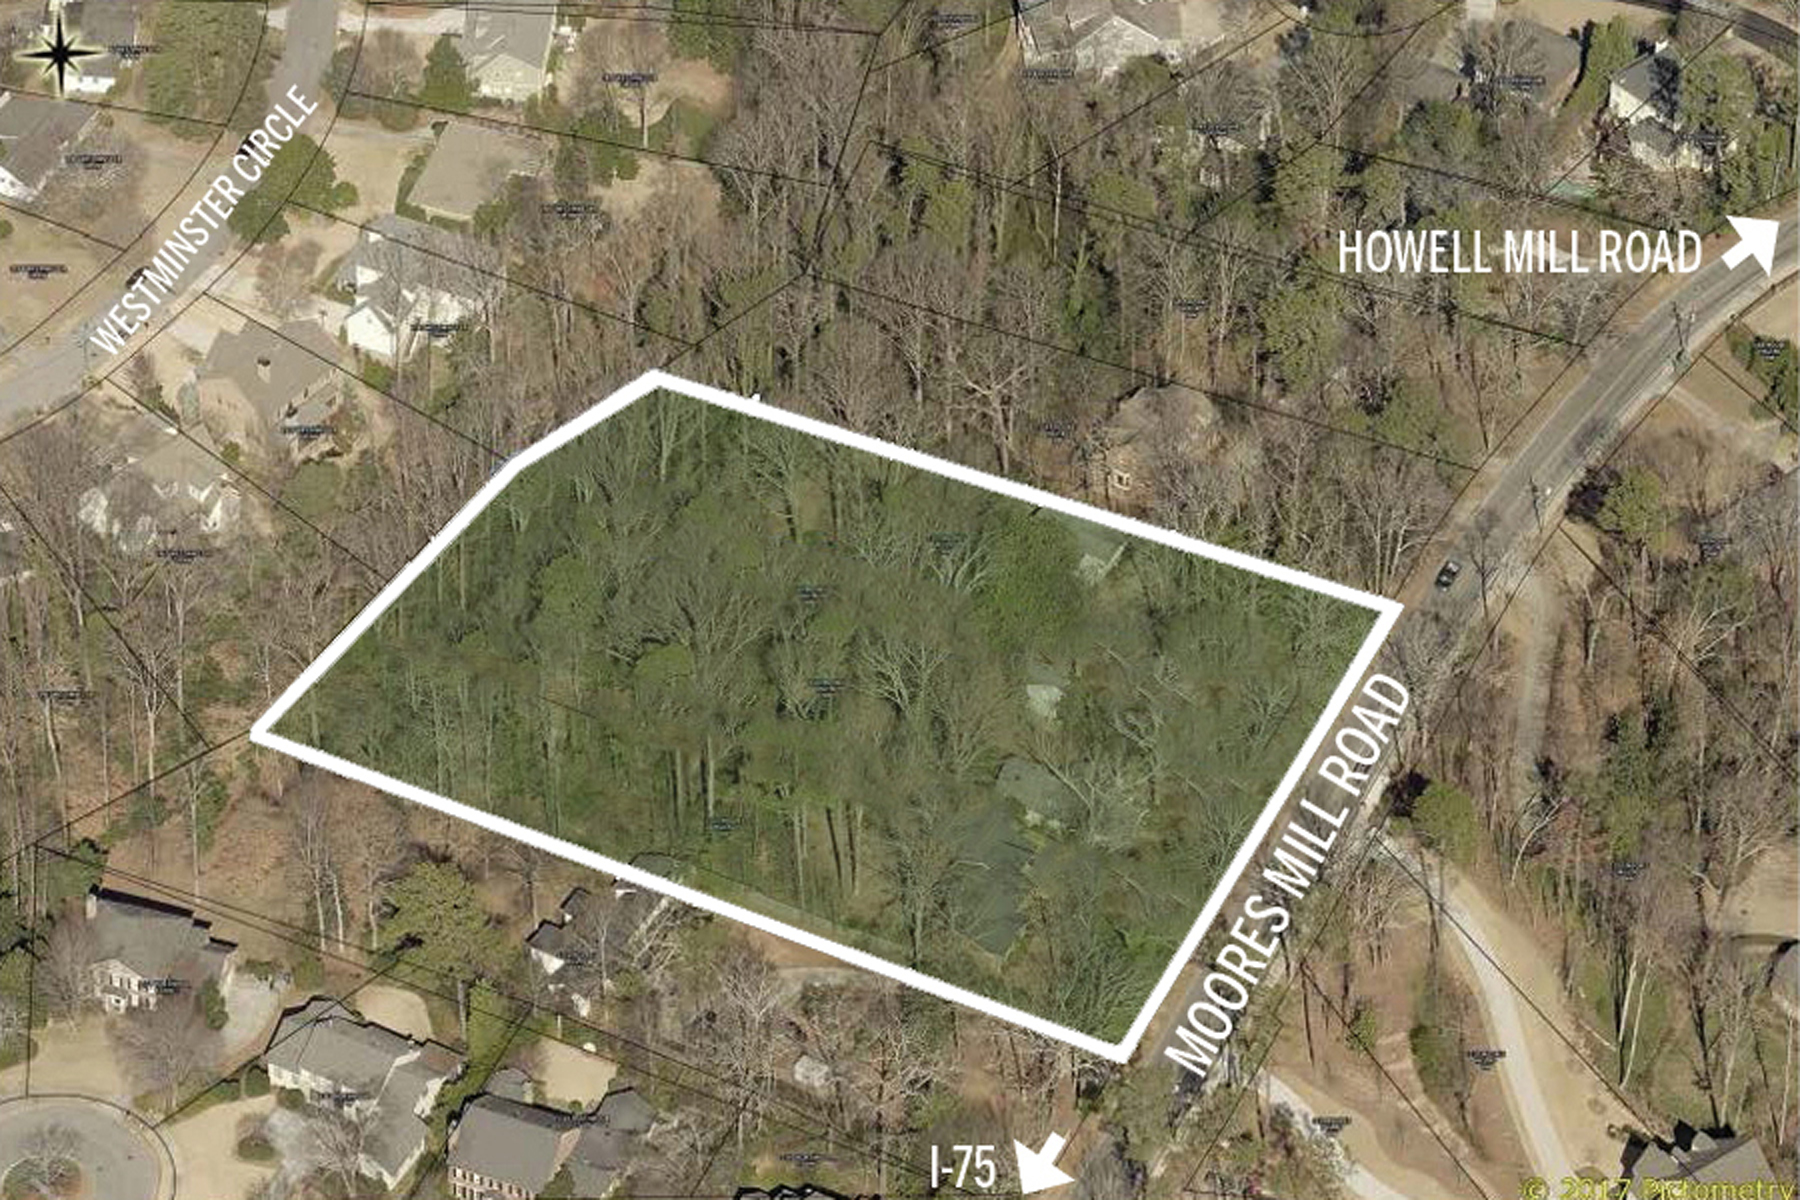 Land for Sale at Assemblage - Potential For 5-6 Lots 1105 Moores Mill Road NW Atlanta, Georgia 30327 United States